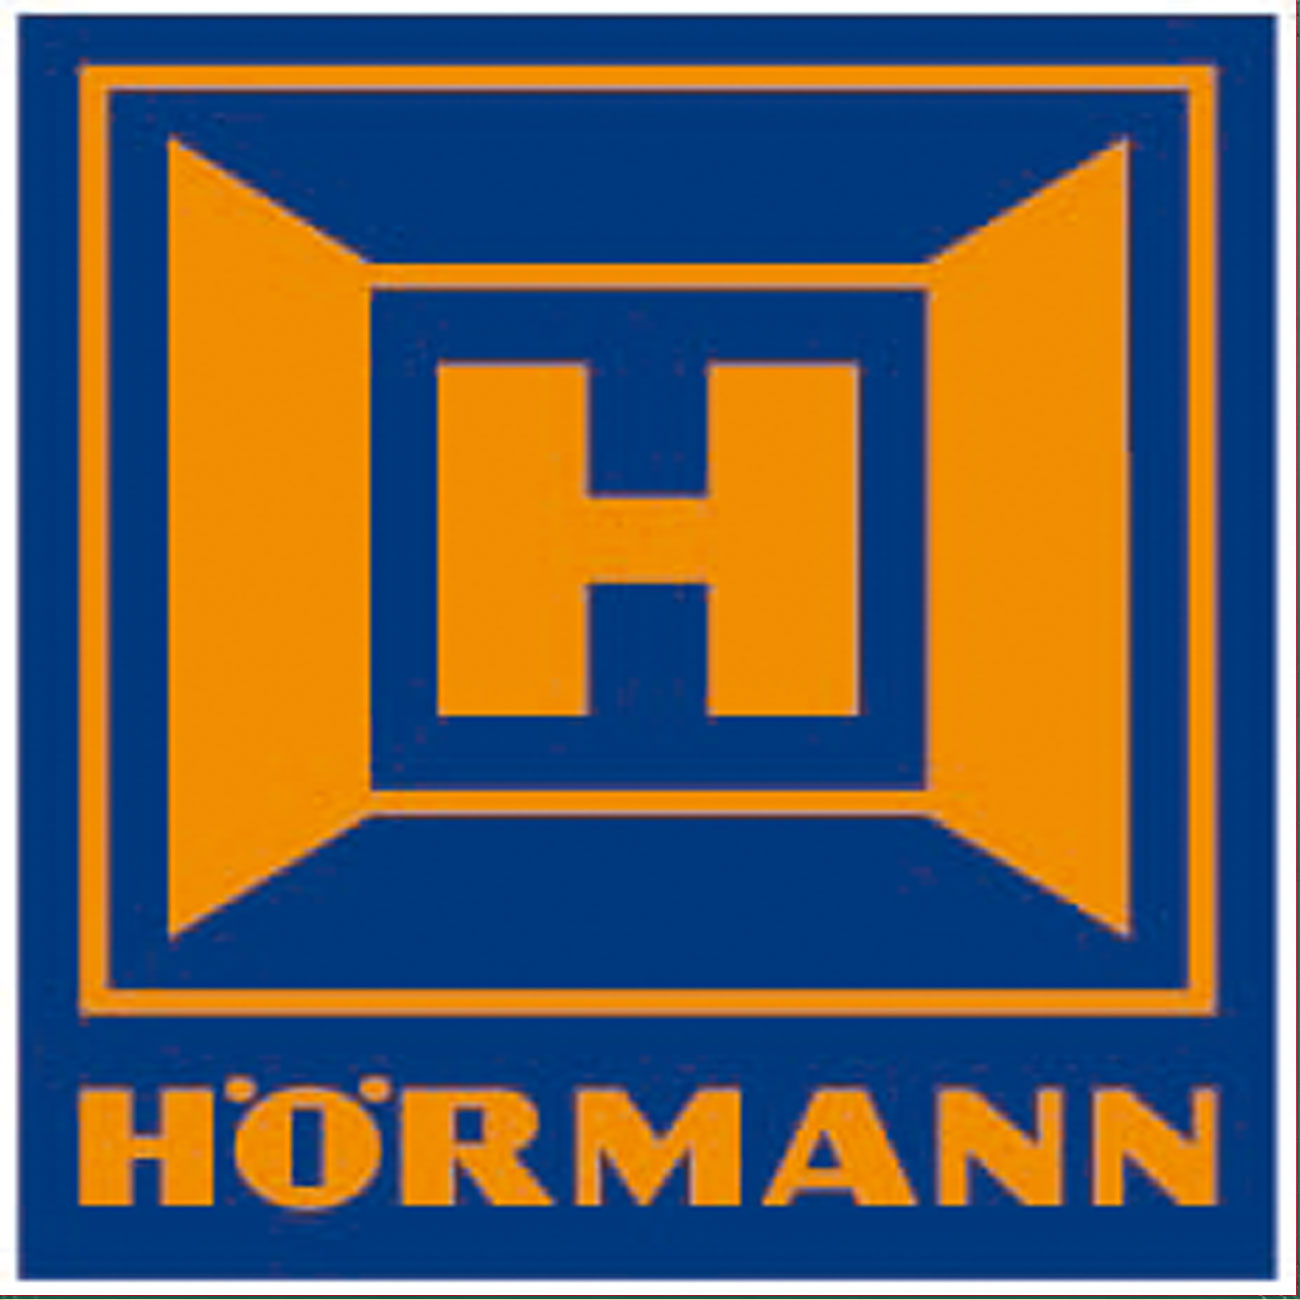 Hormann LPU Sectional logo